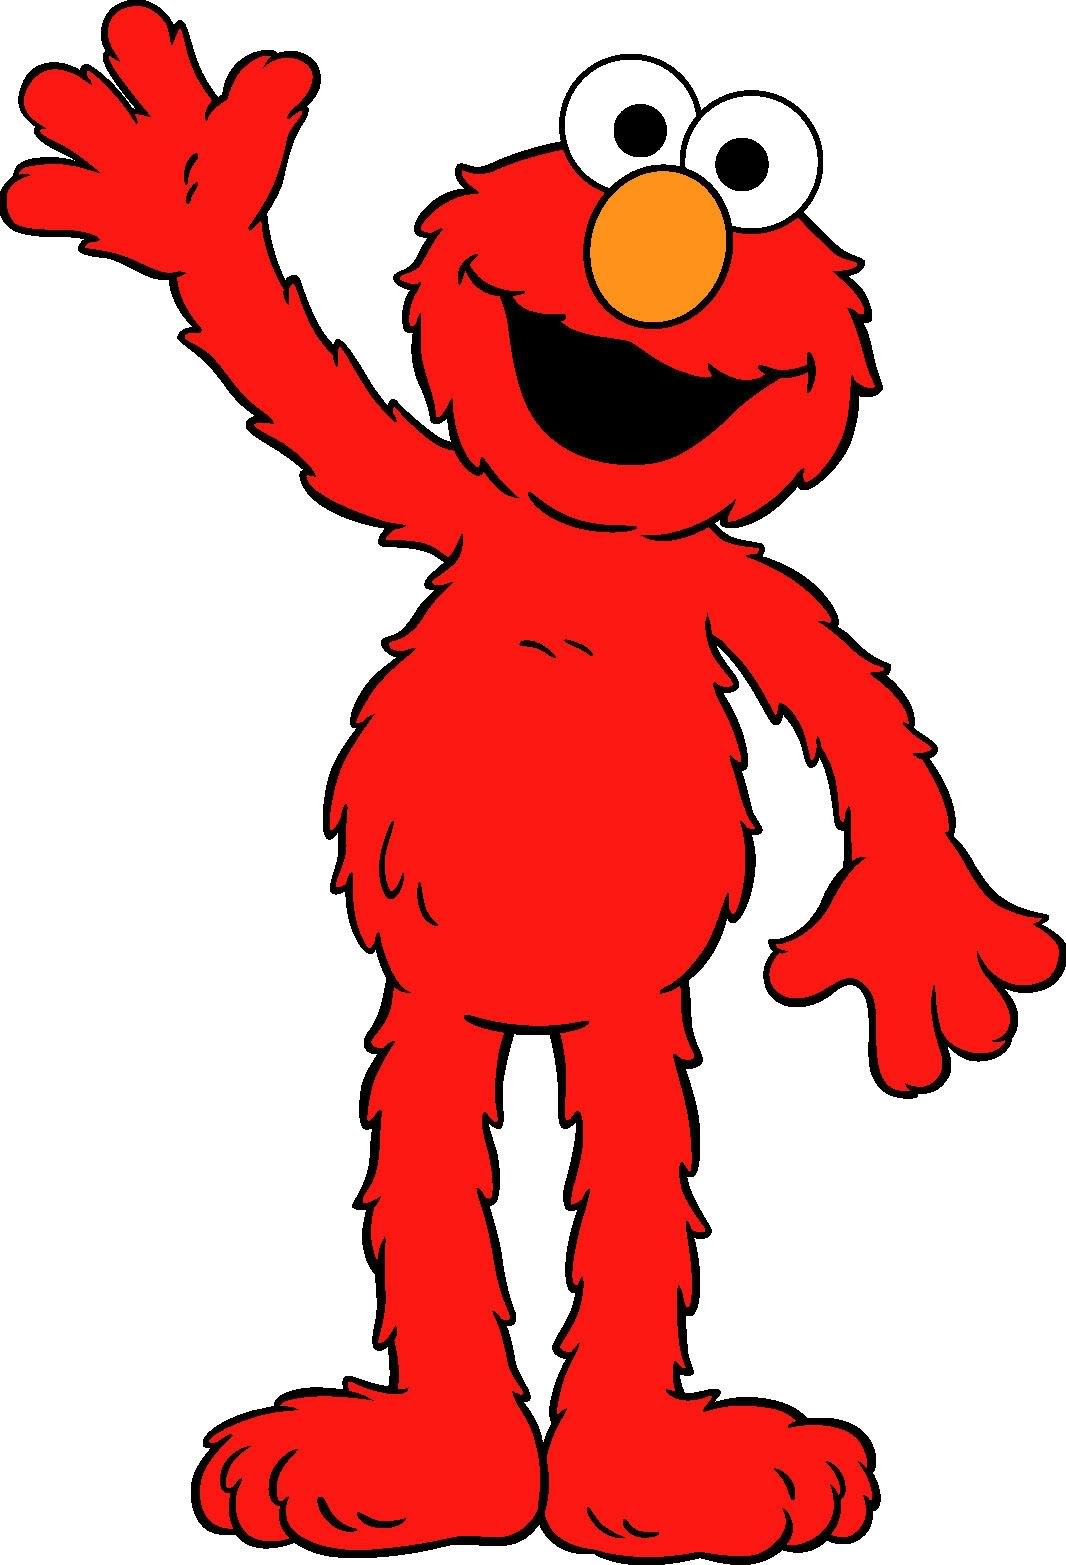 Elmo | Pinterest | Elmo, Baby elmo and Sesame streets